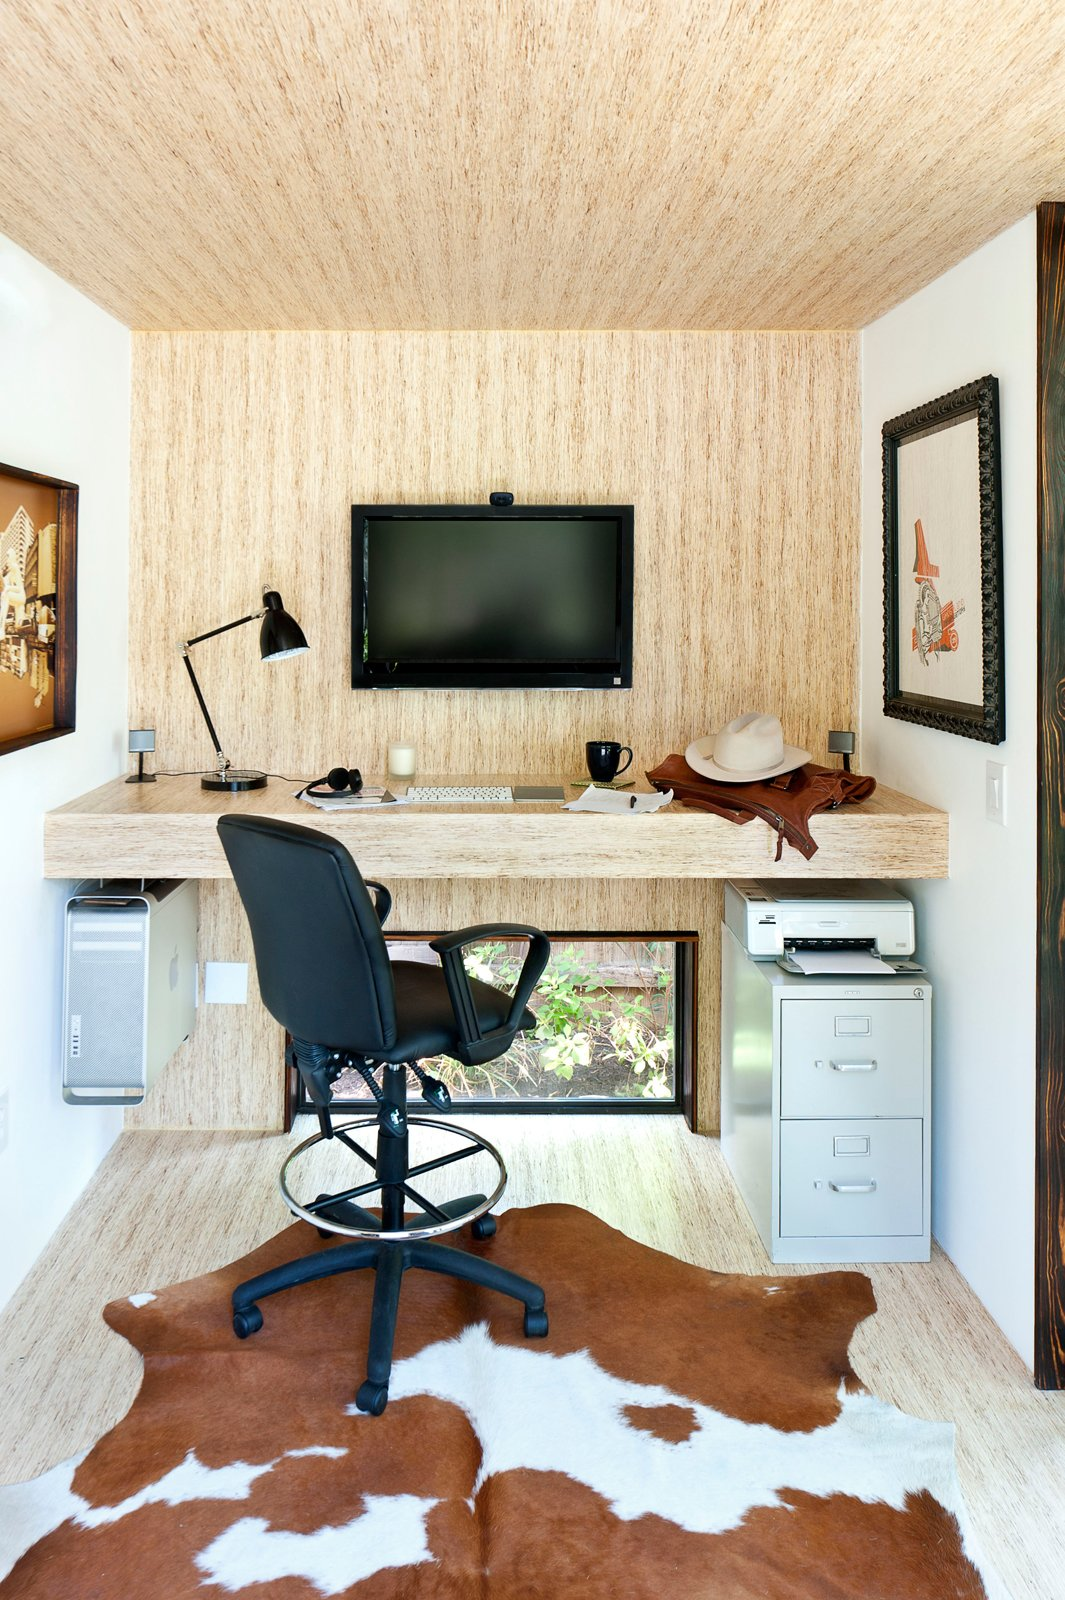 Sett Studio also does complete interior work. This unit features monotread, which are panels made from milled recycled wood, on the floor, walls and desk. Lately, the company has been using more bamboo. Tagged: Shed & Studio and Storage Space.  Photo 6 of 13 in On Your Mark, Get Sett